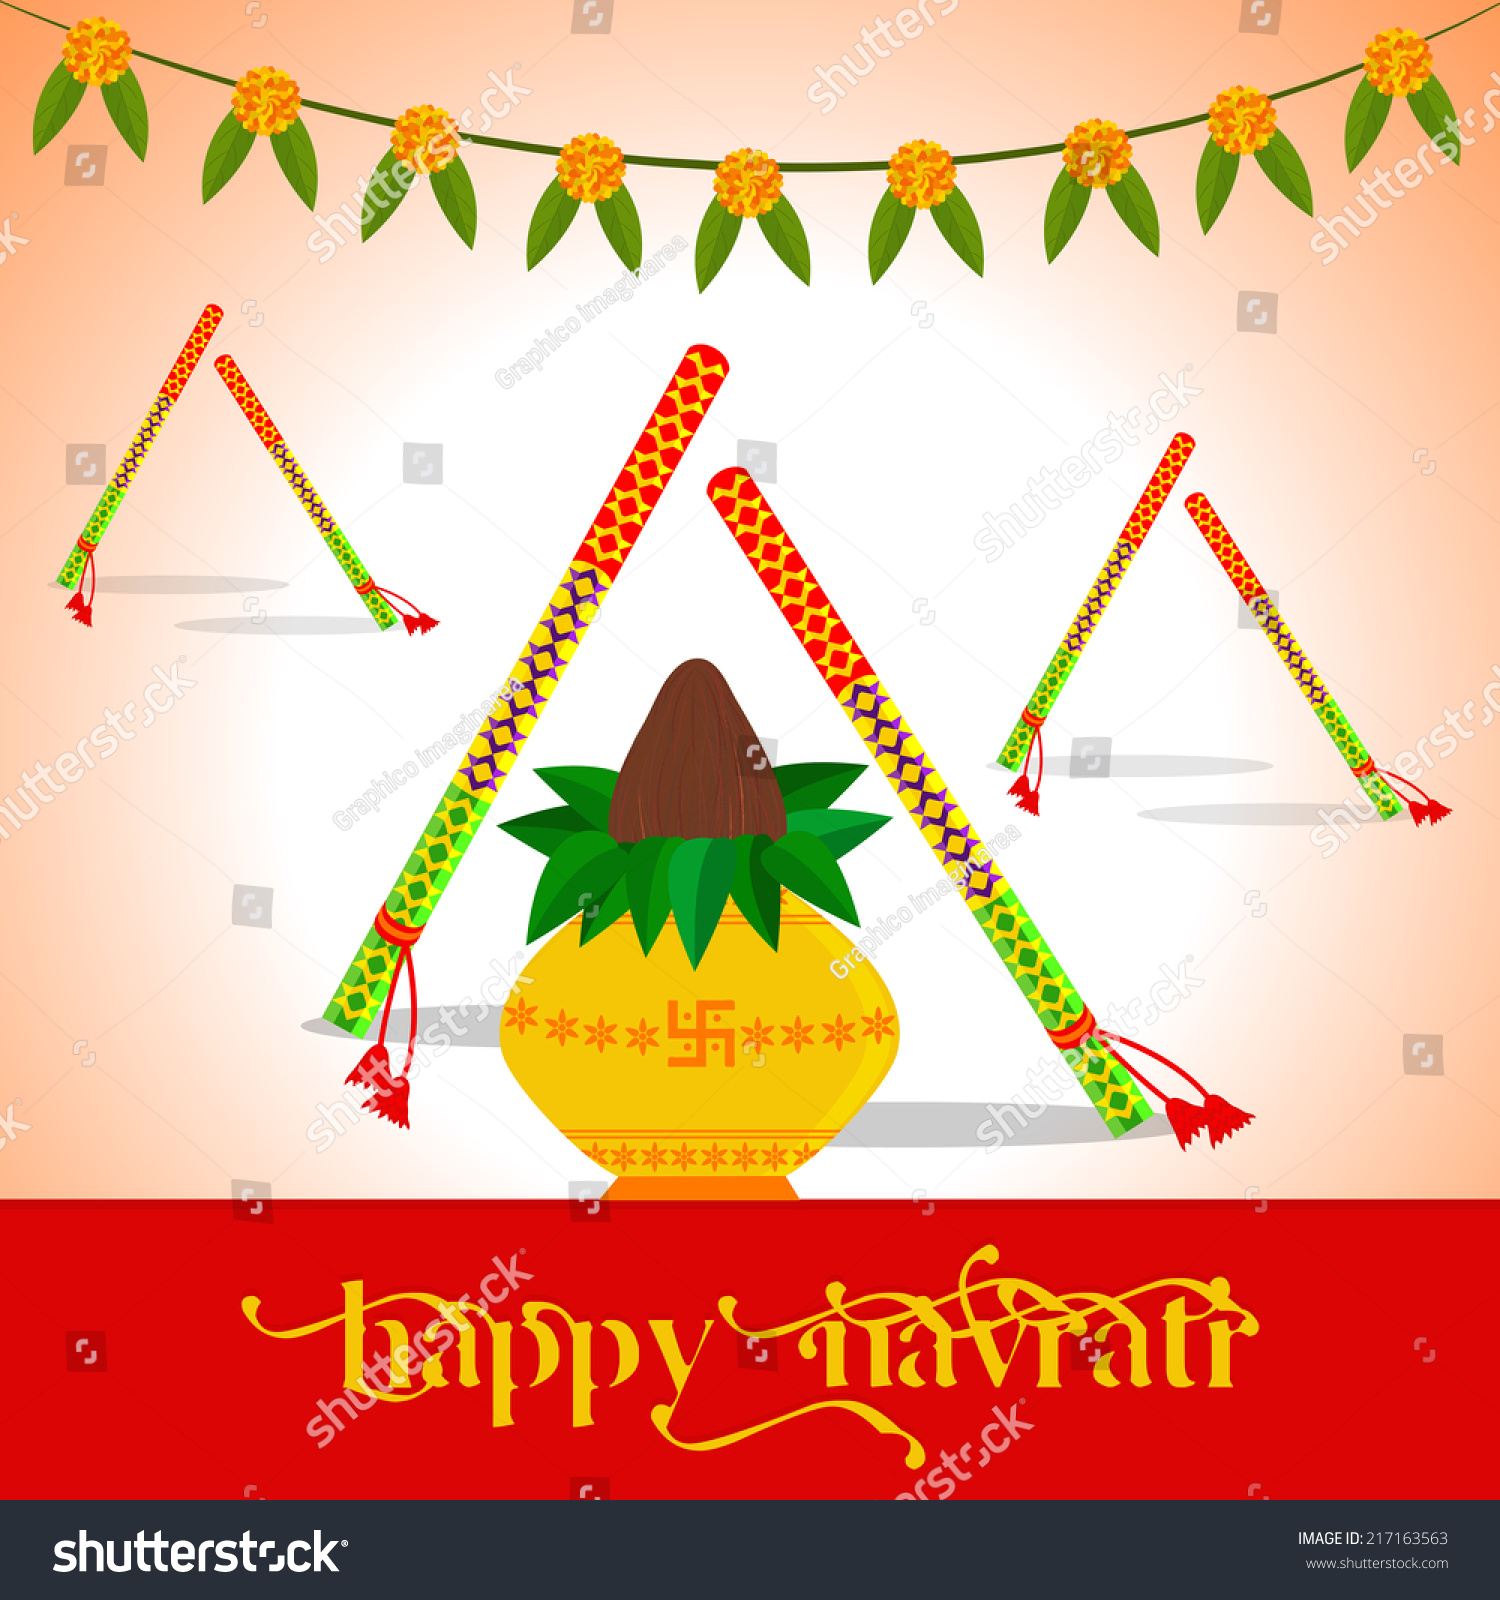 Indian Festival Decoration Illustration Decorated Dandiya Indian Festival Navratri Stock